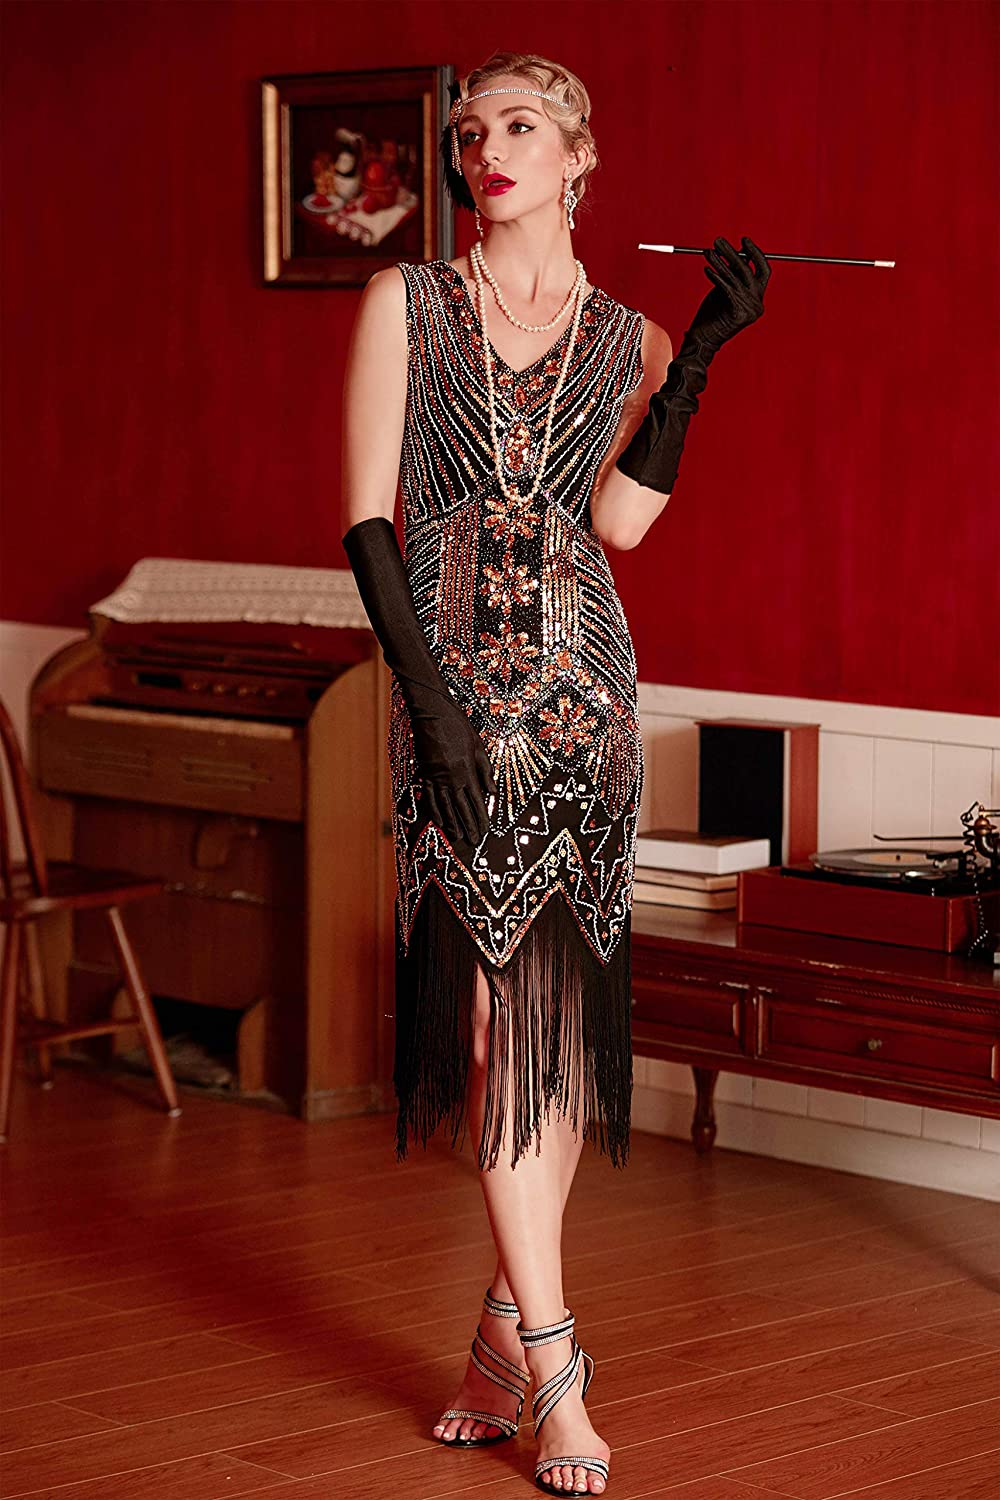 Great Gatsby Dress – Great Gatsby Dresses for Sale Metme Womens Flapper Dress 1920s V Neck Beaded Fringed Gatsby Theme Roaring 20s Dress for Prom $57.99 AT vintagedancer.com